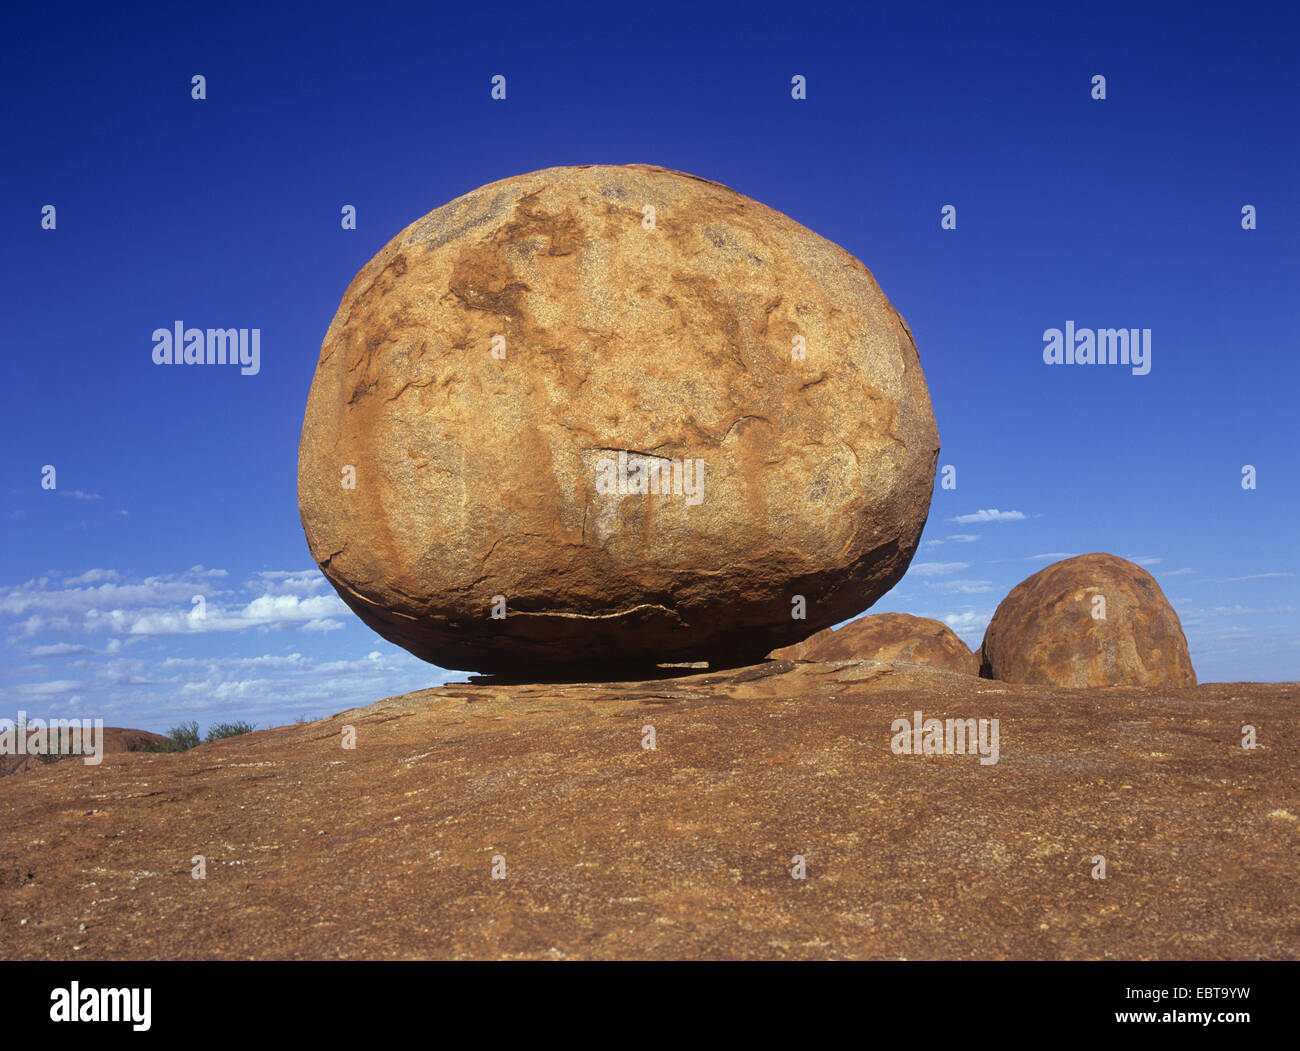 Karlu Karlu / Devils Marbles - perfectly round granite stones formed by erosion in the Australian desert, a sanctuary - Stock Image